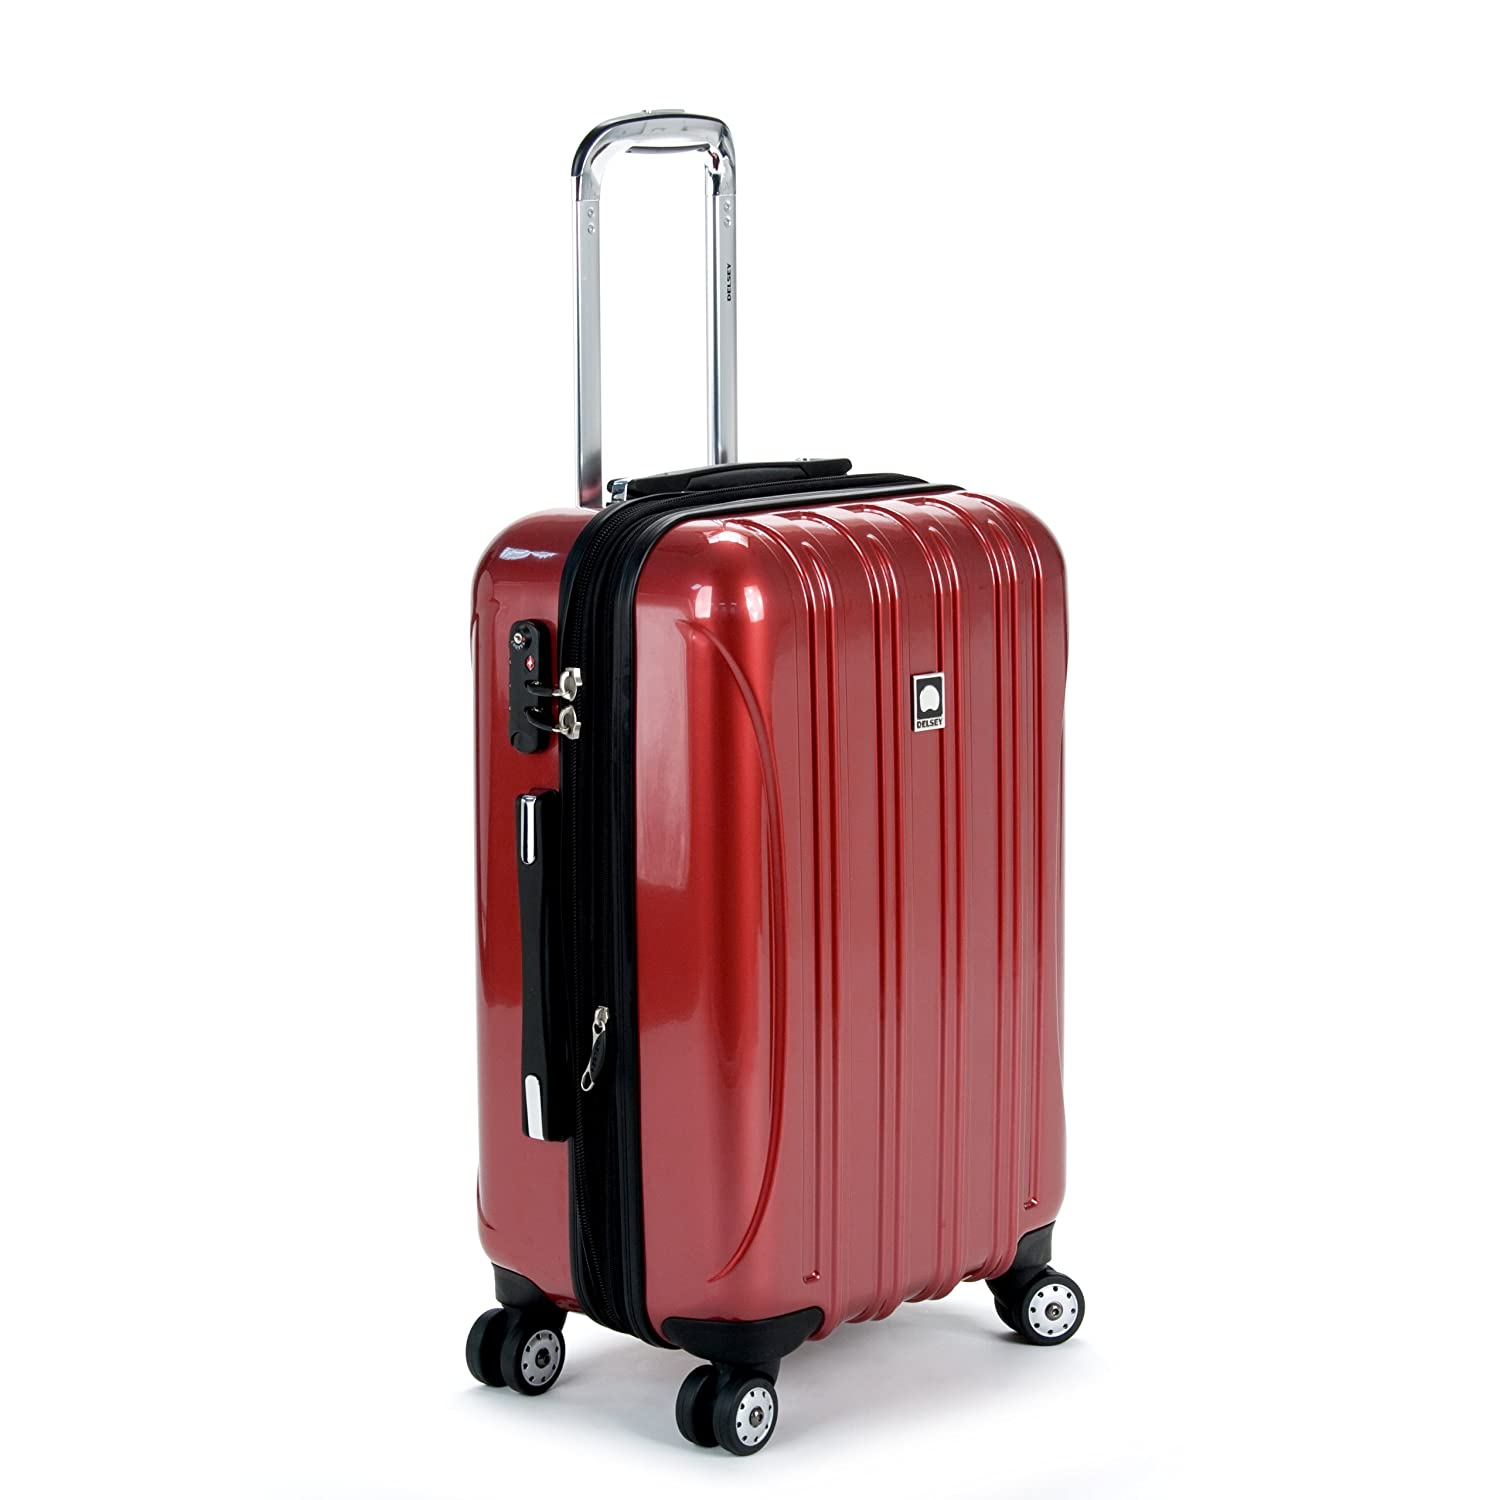 9f882be53 Amazon.com   DELSEY Paris Luggage Carry-on Domestic, Brick Red   Luggage